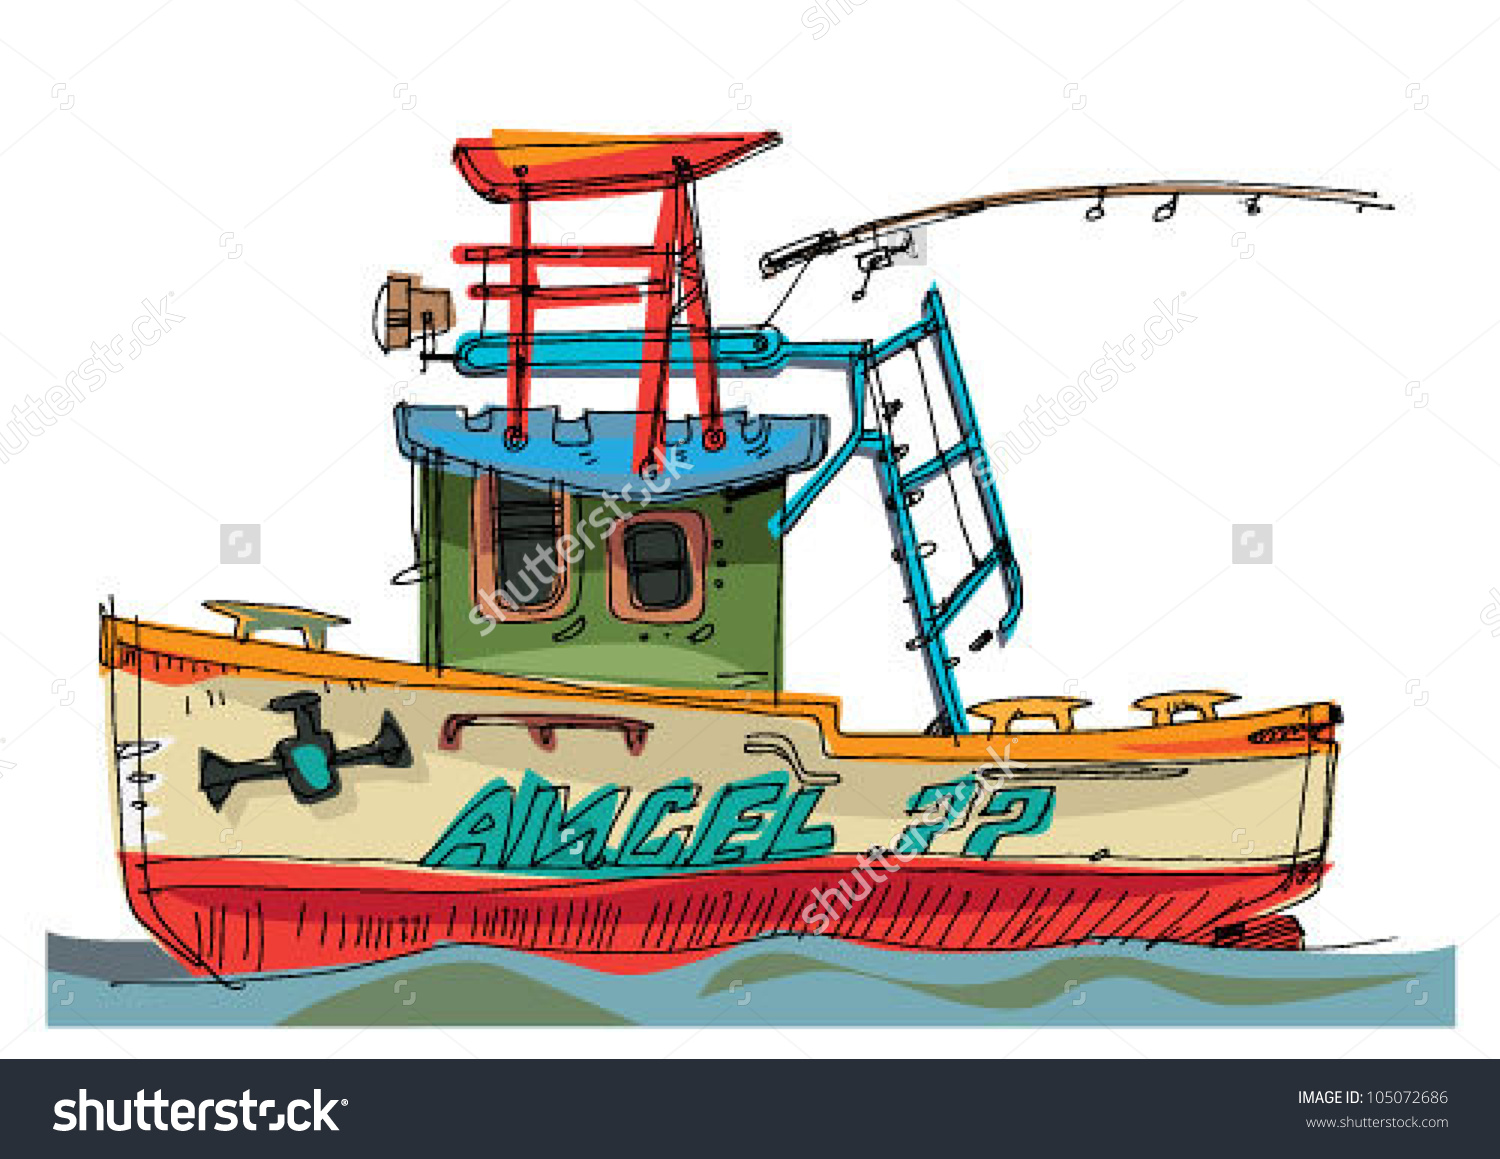 Fishboat Cartoon Caricature Stock Vector 105072686.